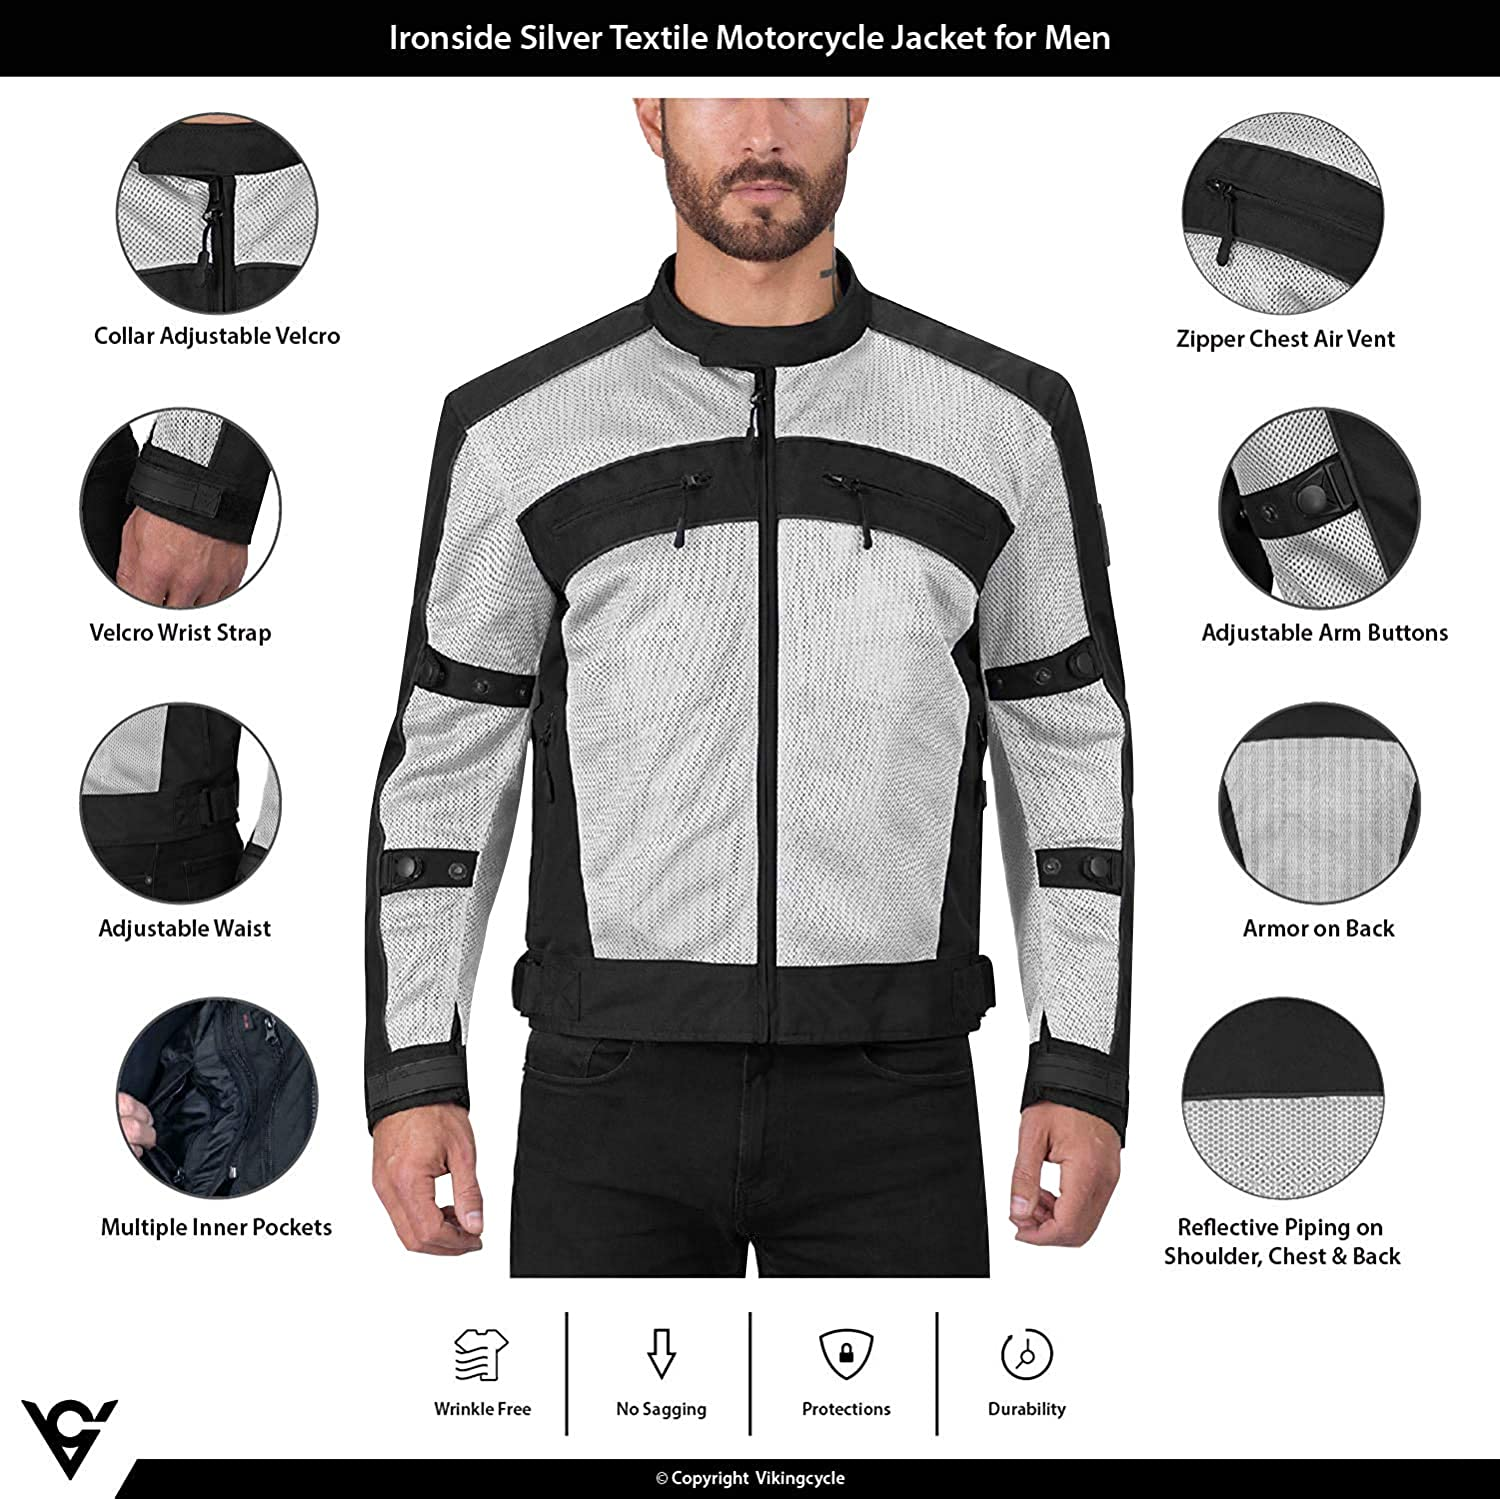 Adjustable Breathable Armor for Bikers Viking Cycle Ironside Textile Mesh Motorcycle Jacket for Men